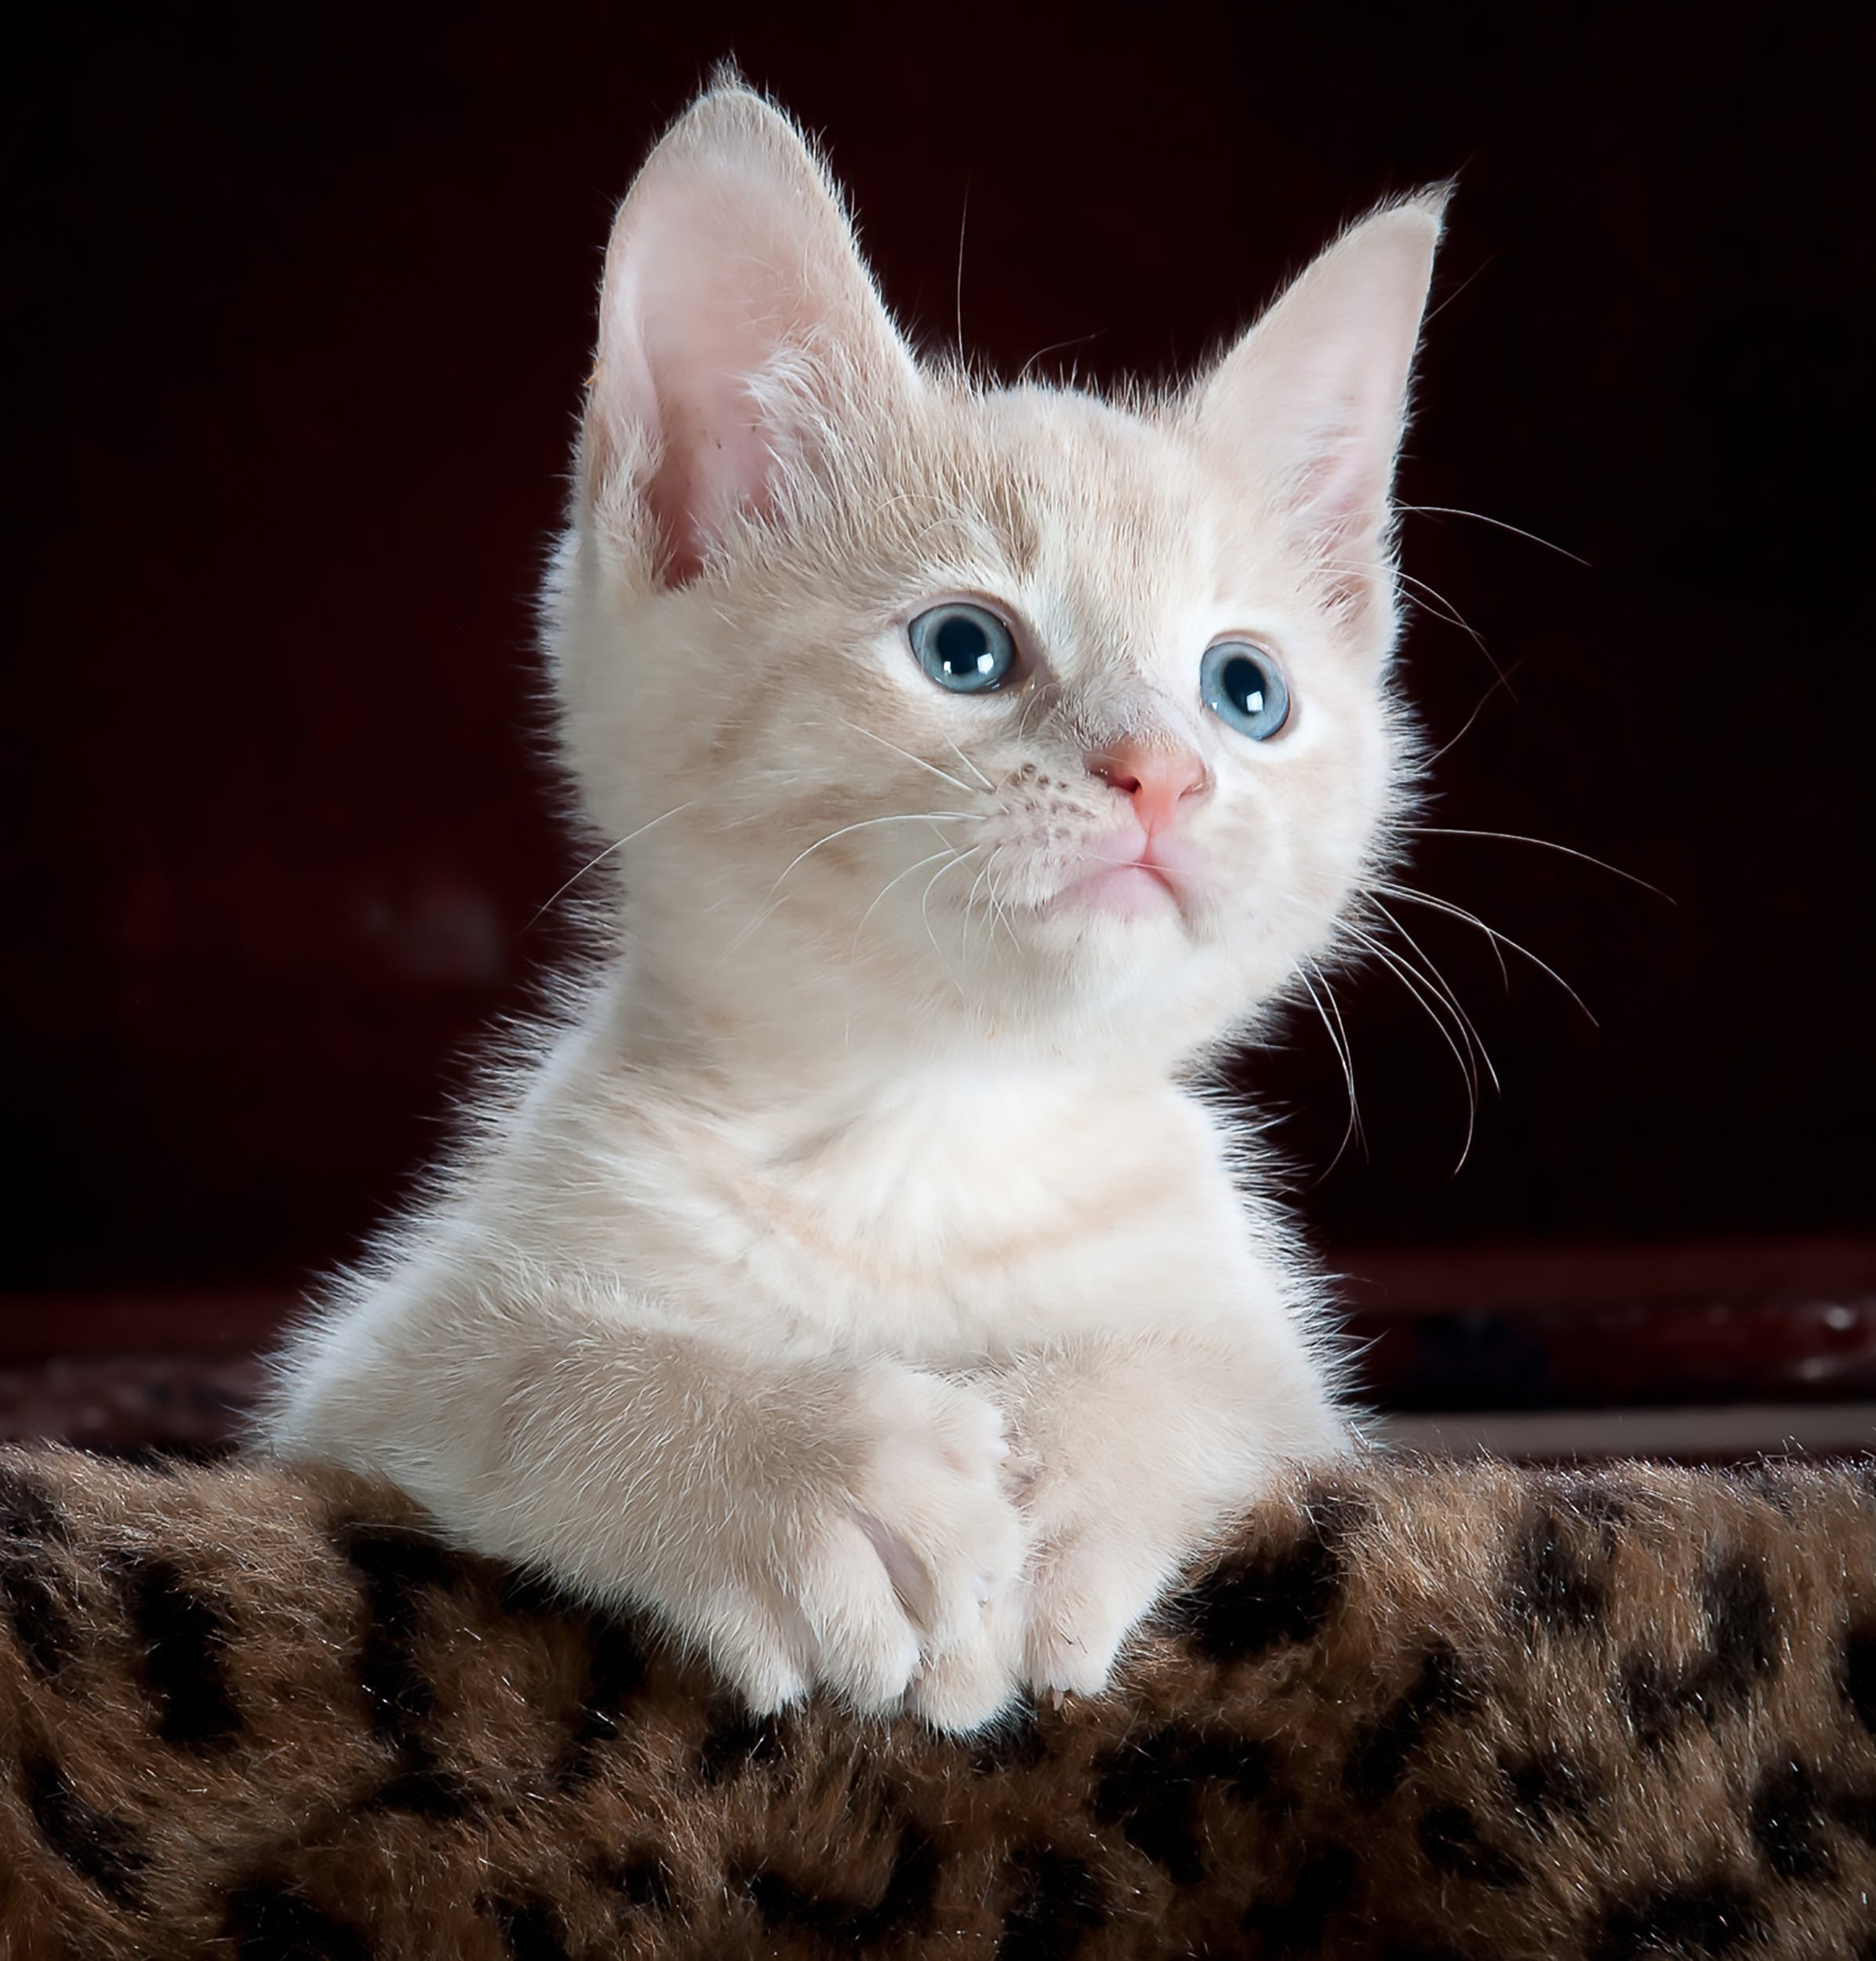 White and Grey Kitten on Brown and Black Leopard Print Textile